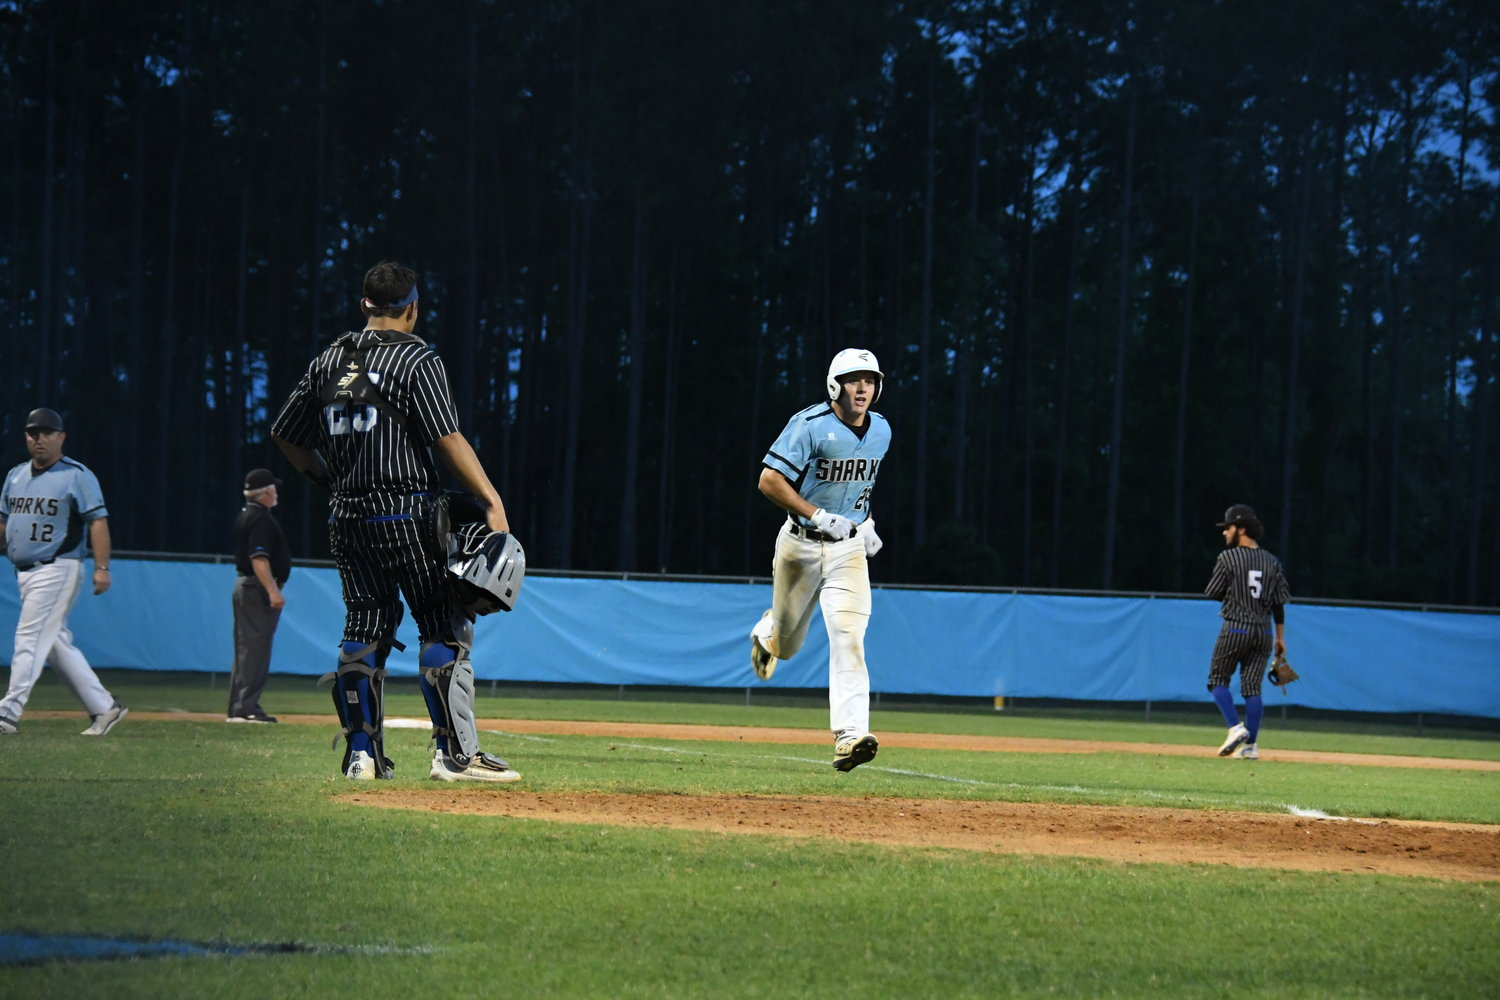 Tony Roca scores for Ponte Vedra on a home run in the sixth inning.